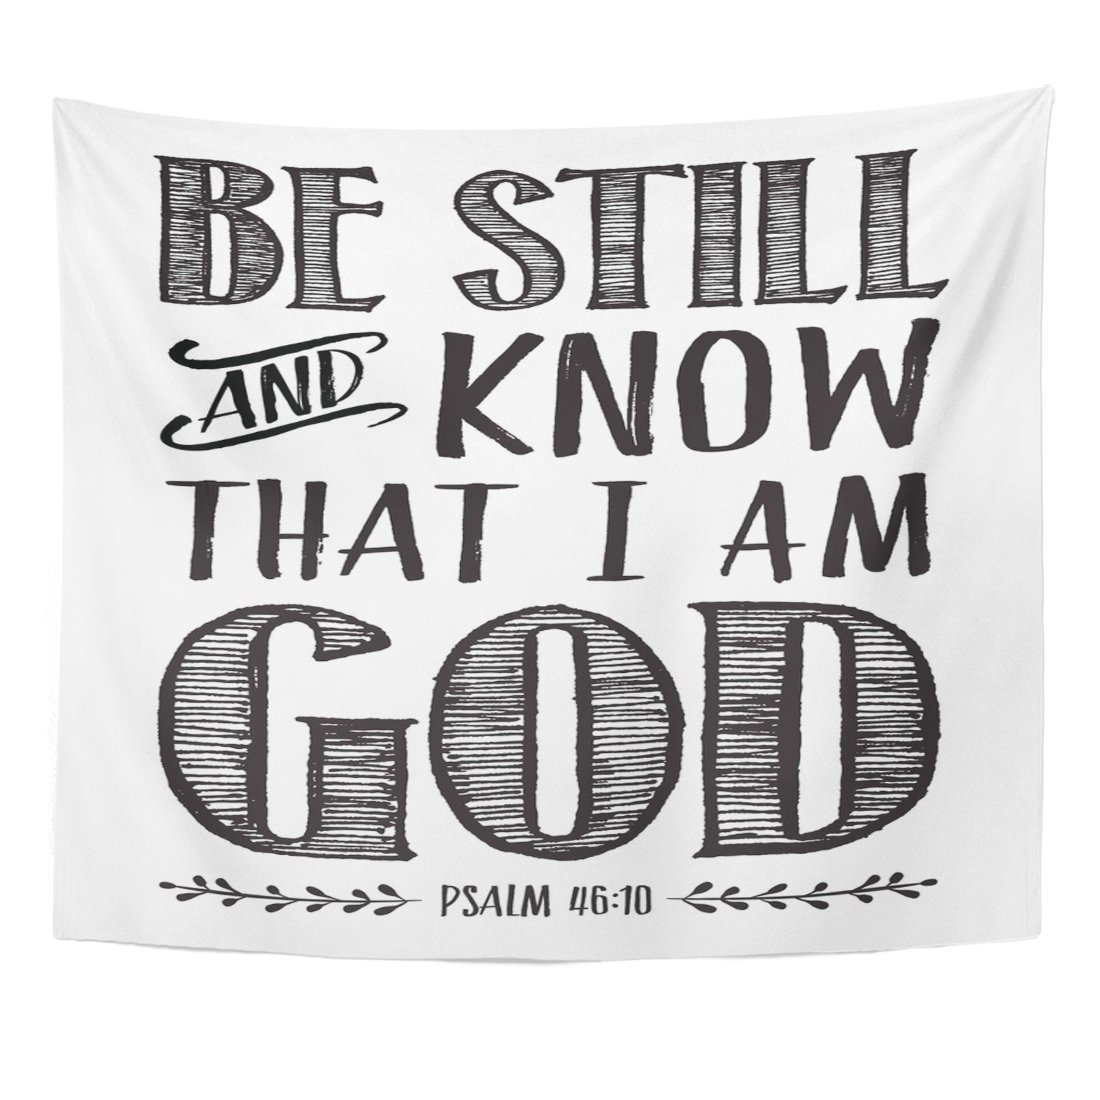 VaryHome Tapestry Christian Biblical Calligraphy with Elegant Swashes Accents From Psalms Be Still and Know That I Am God Home Decor Wall Hanging for Living Room Bedroom Dorm 50x60 Inches